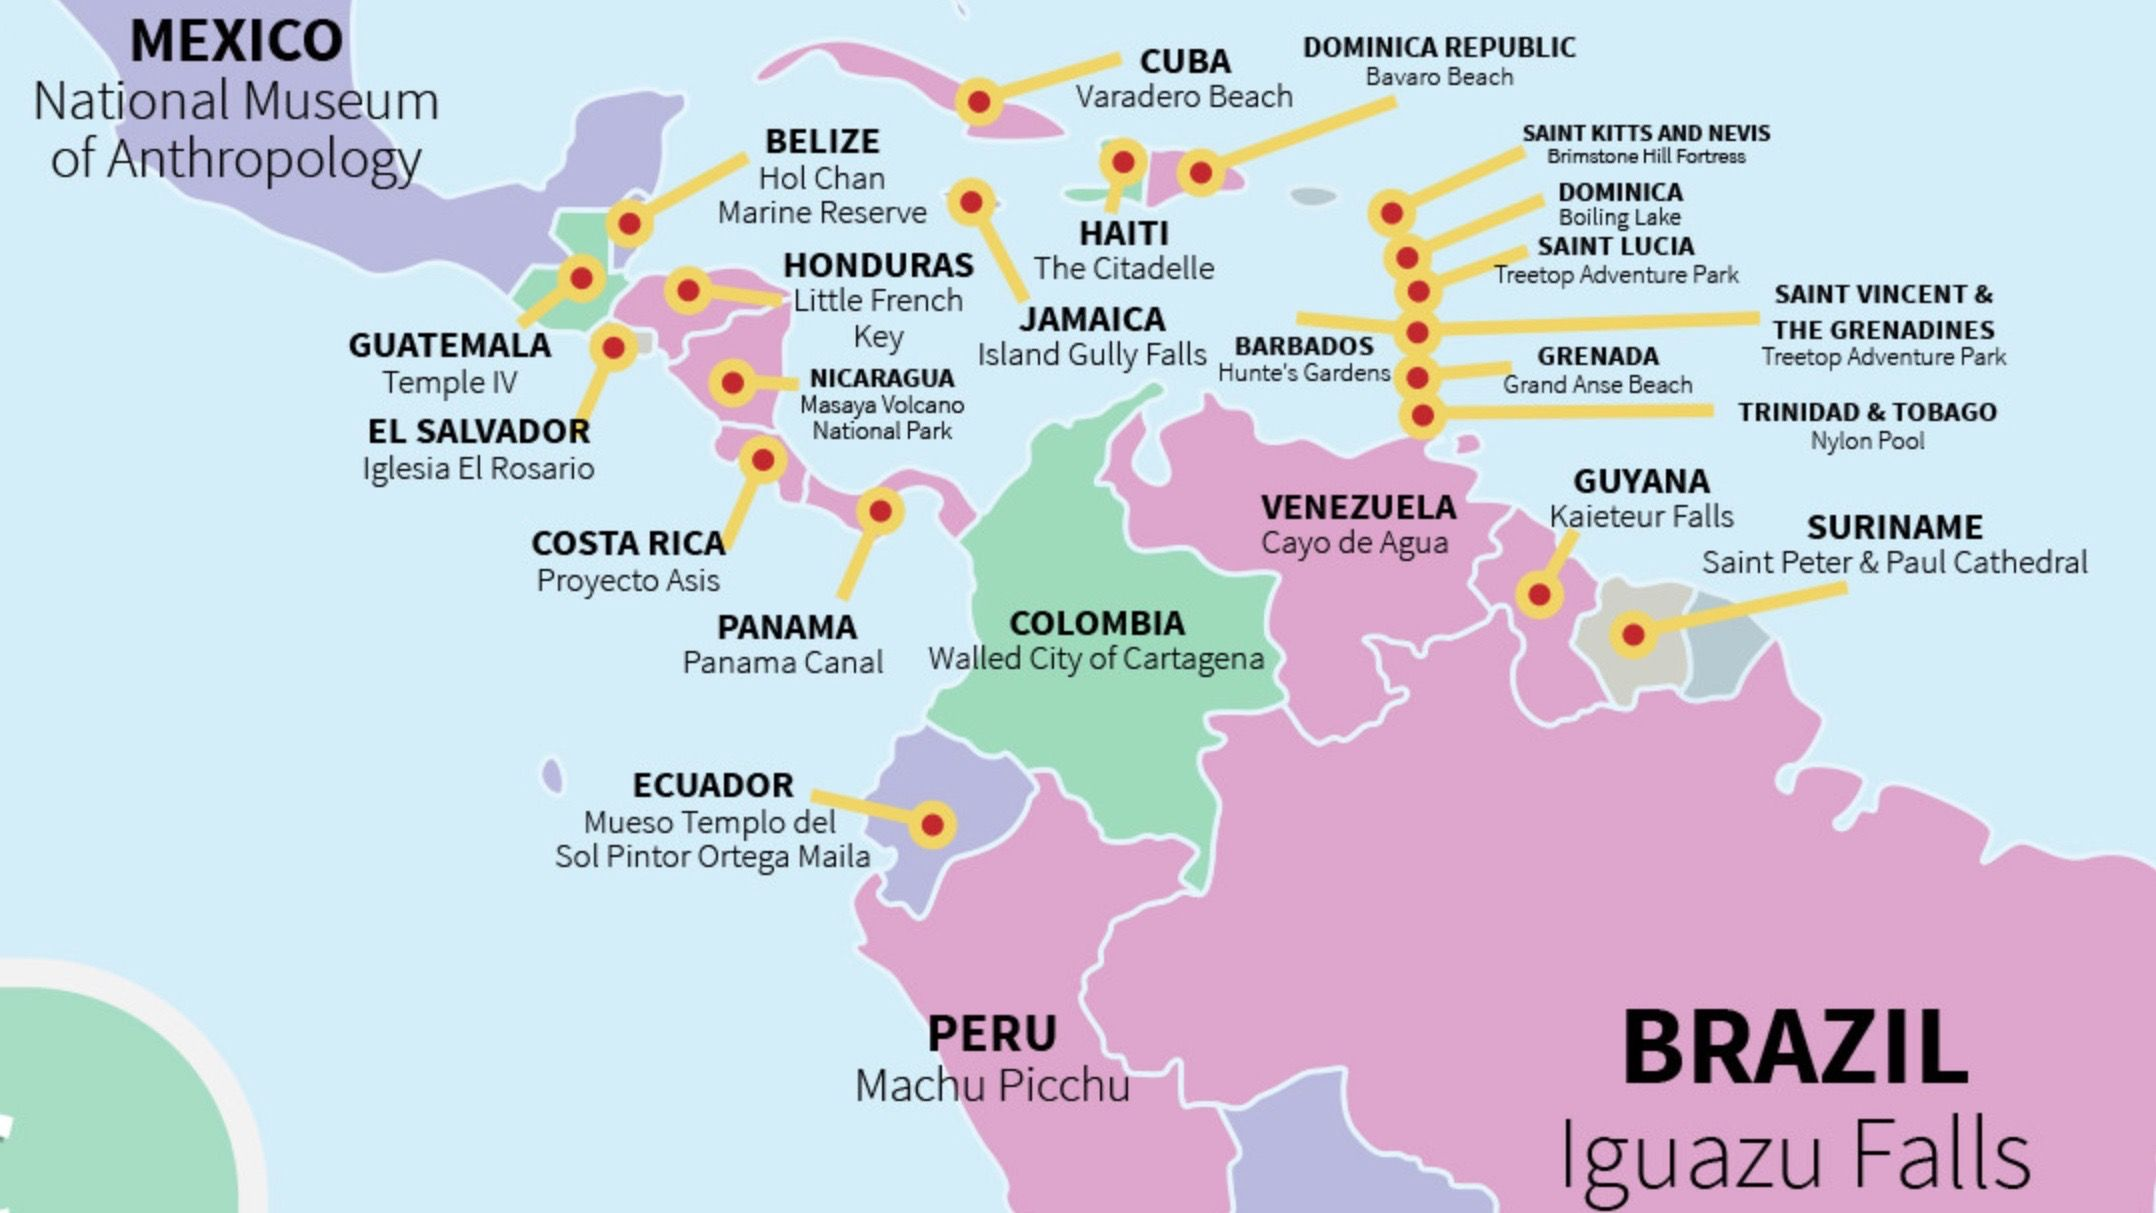 4 Central:South America travel hotspots